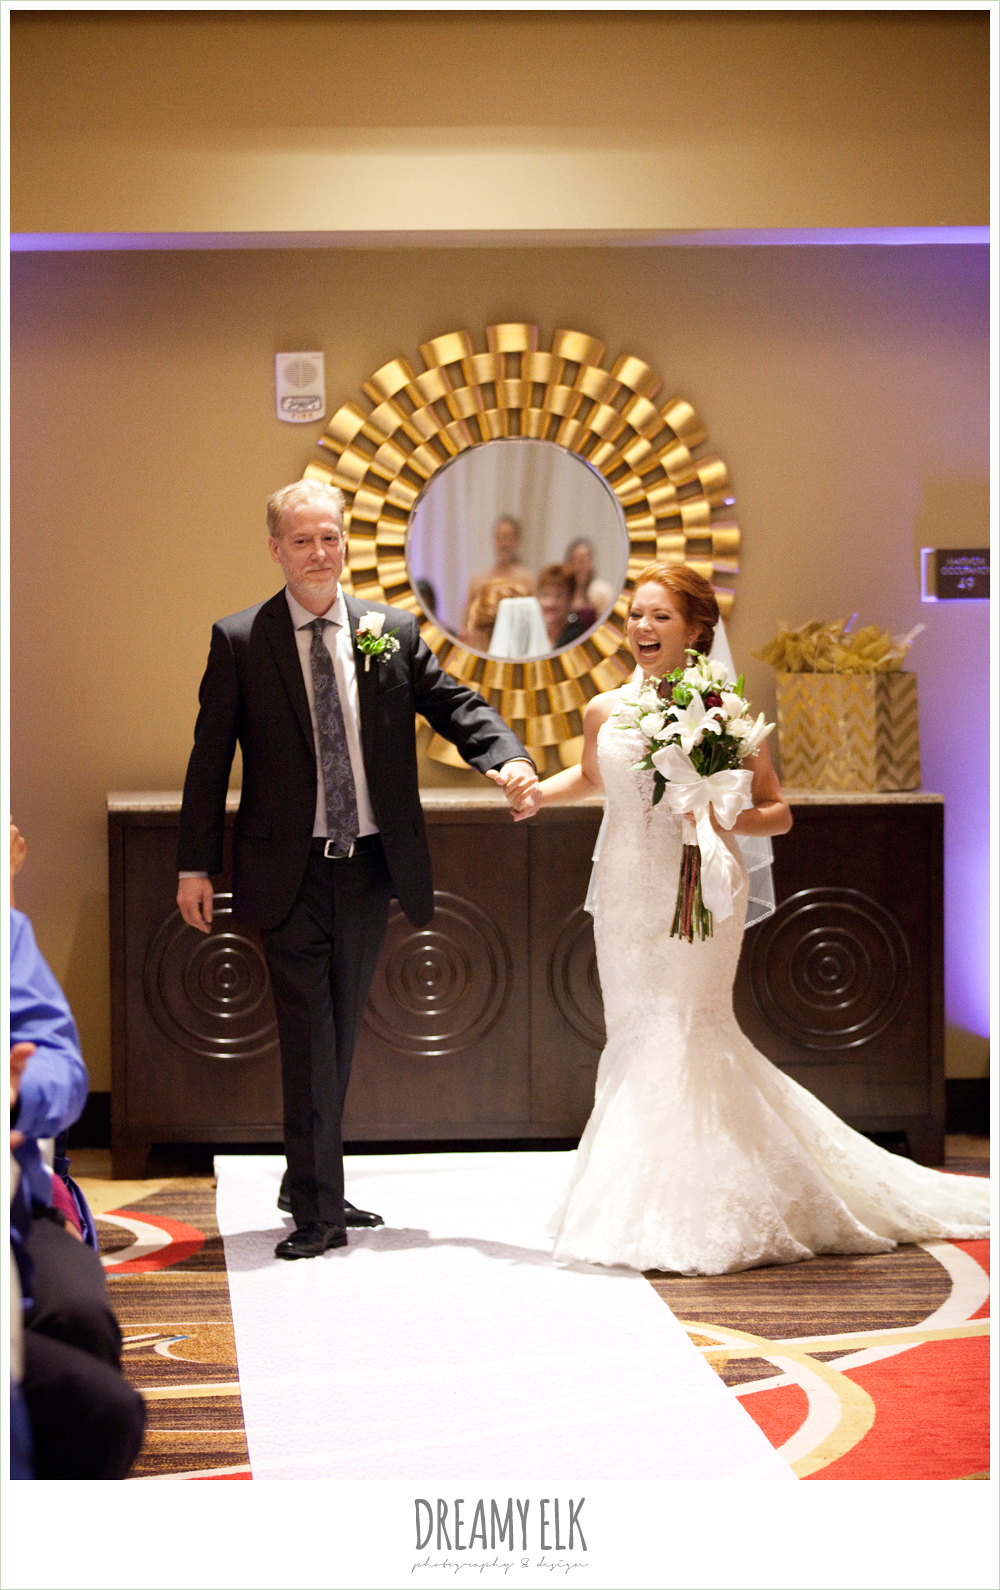 hilton hotel ballroom, university of houston, bride walking down the aisle, wedding ceremony, dreamy elk photography and design